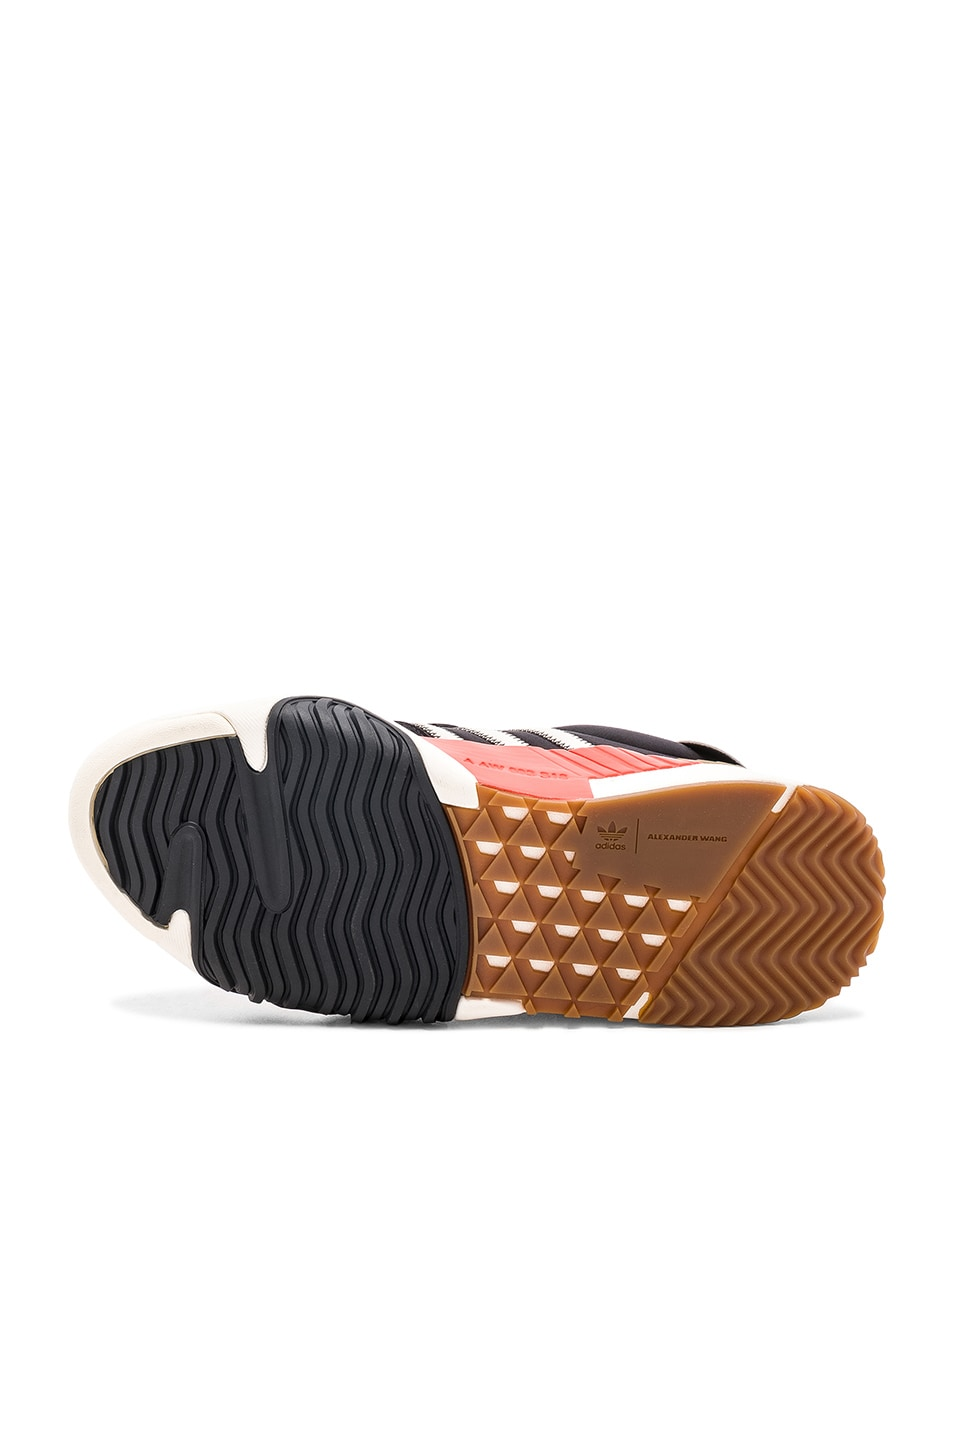 Image 6 of adidas by Alexander Wang Trainers in Core Black & Core White & Borang